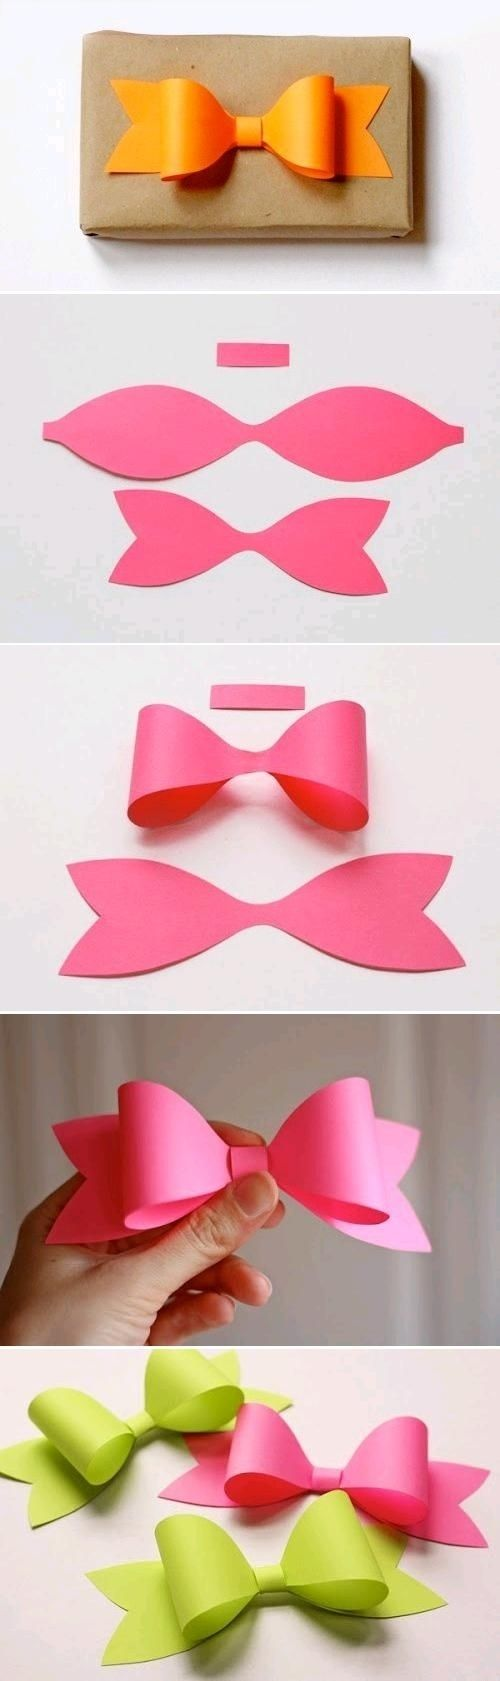 Make a surprisingly easy bow out of paper. | 23 Tricks To Take The Stress Out Of Wrapping Gifts